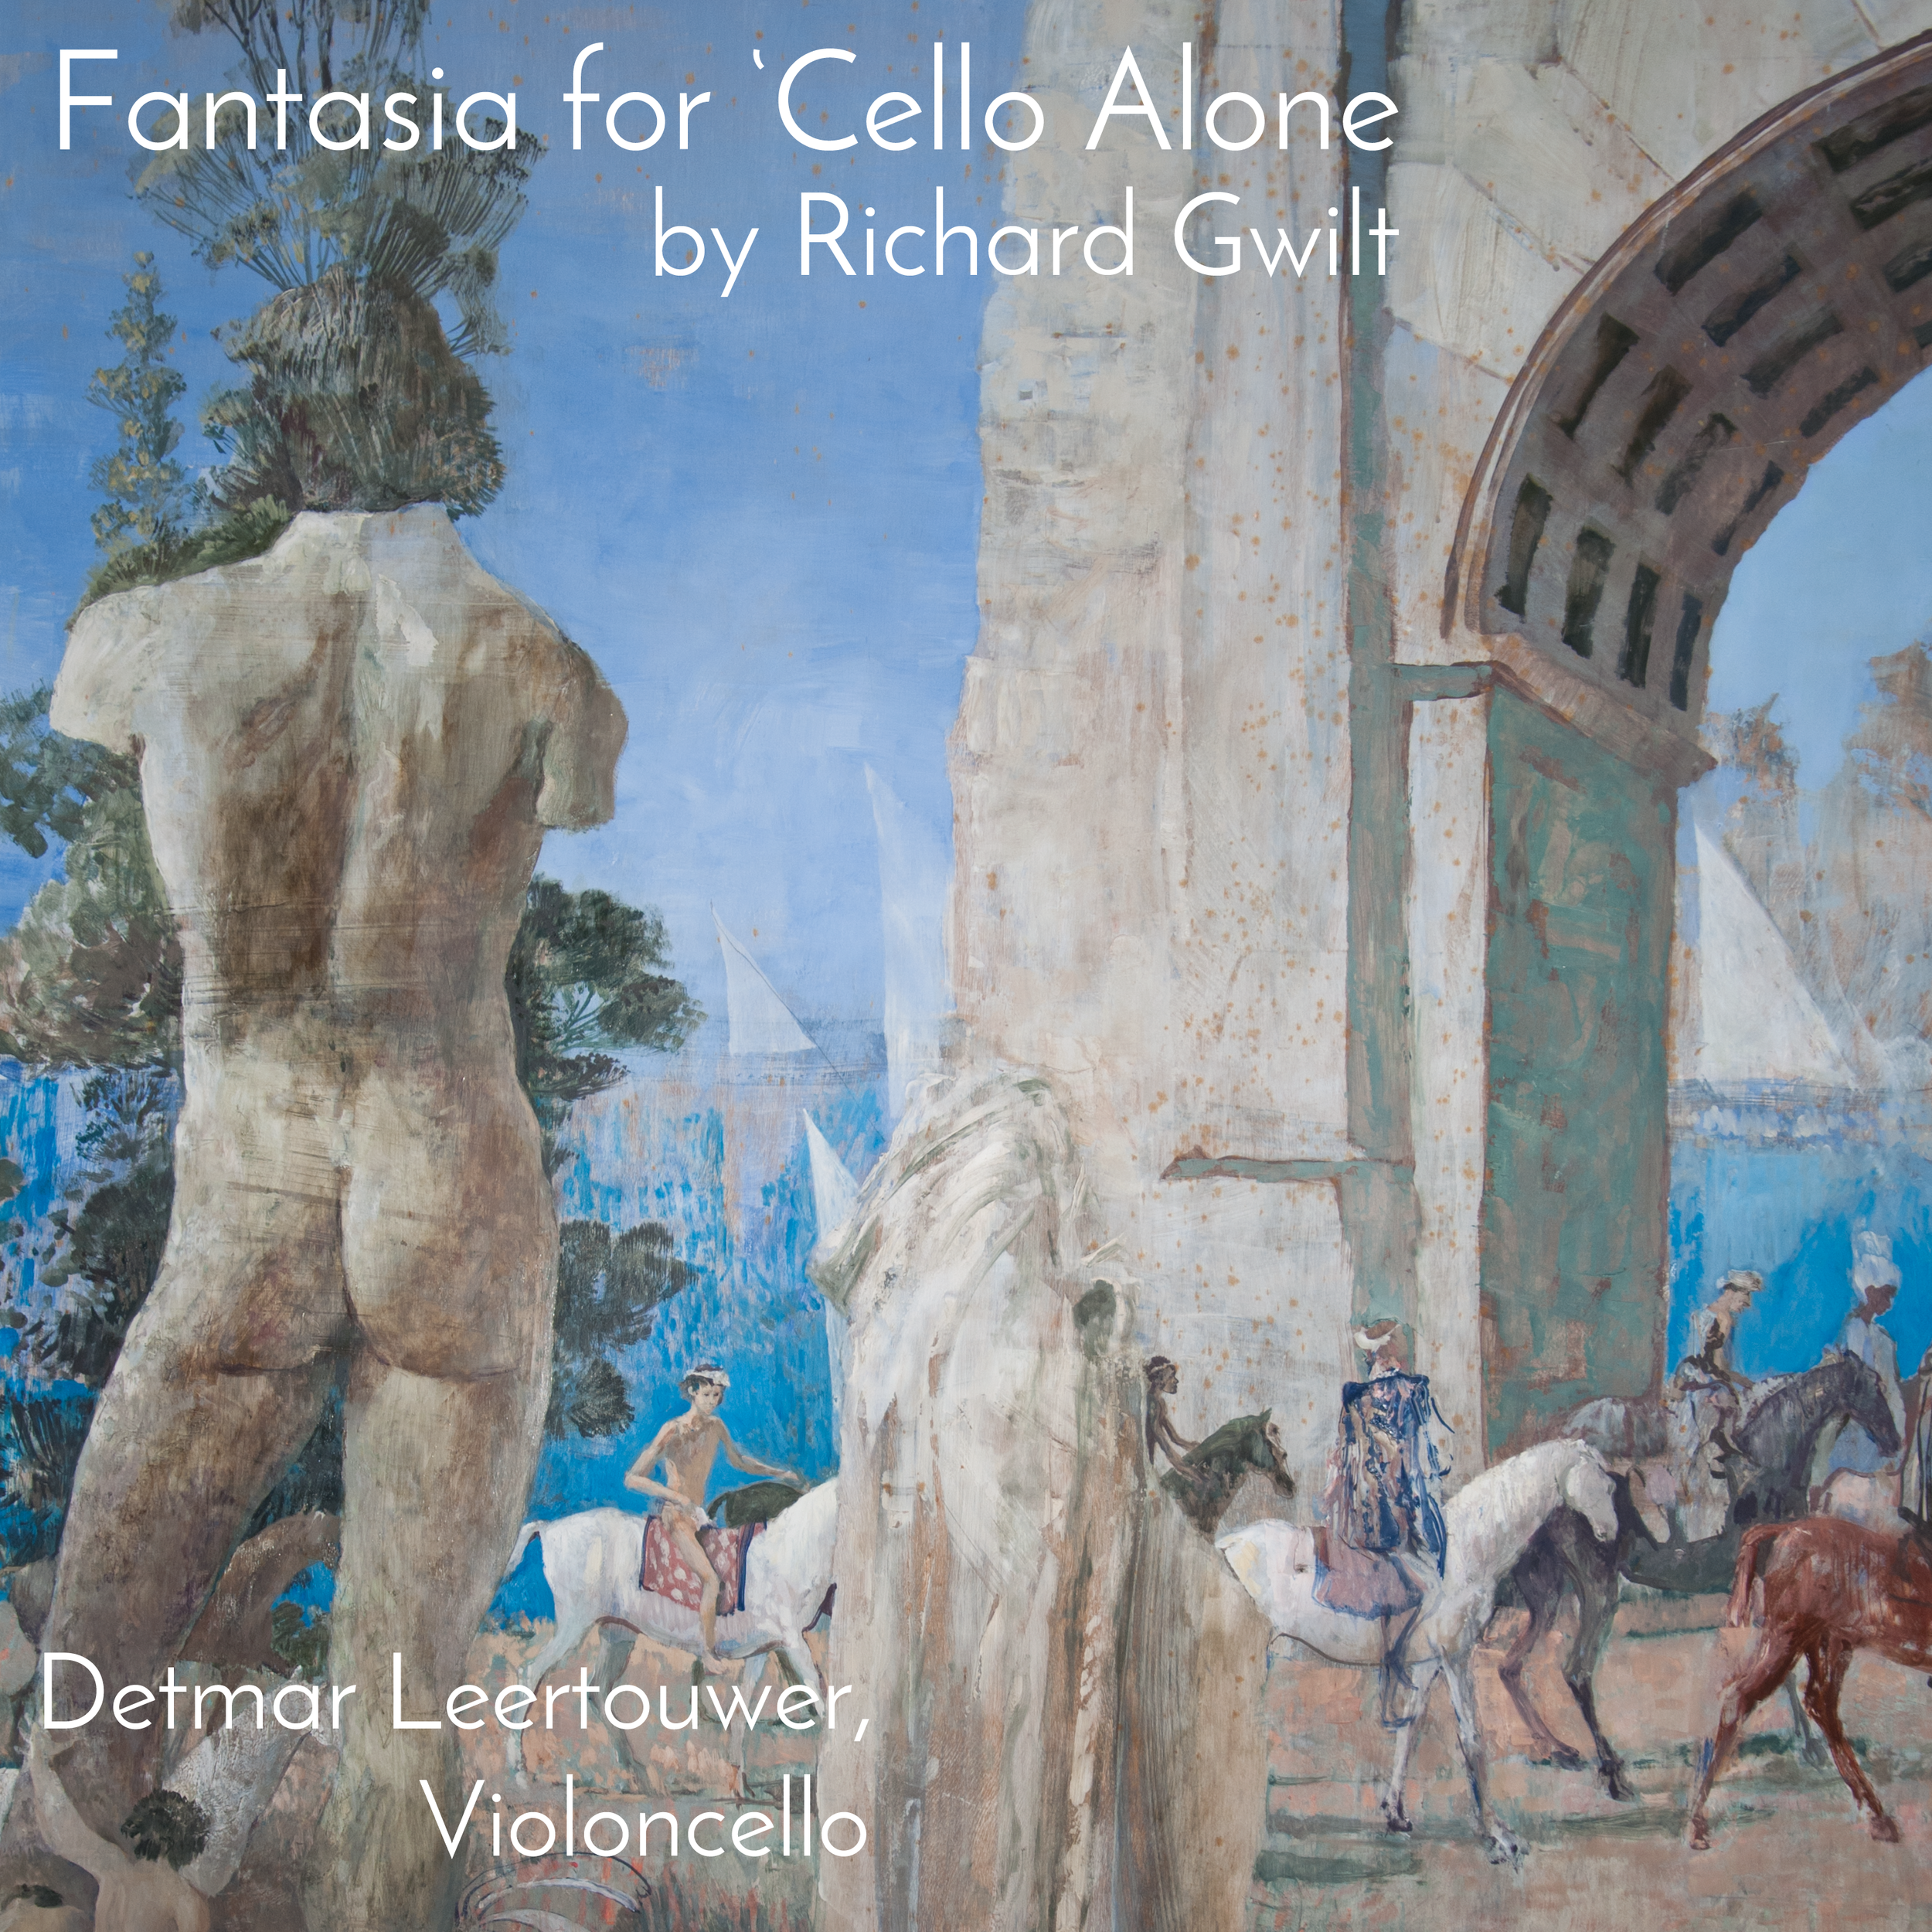 Click or tap on the image to download the 'audio-only' version of Fantasia for 'Cello Alone by Richard Gwilt.